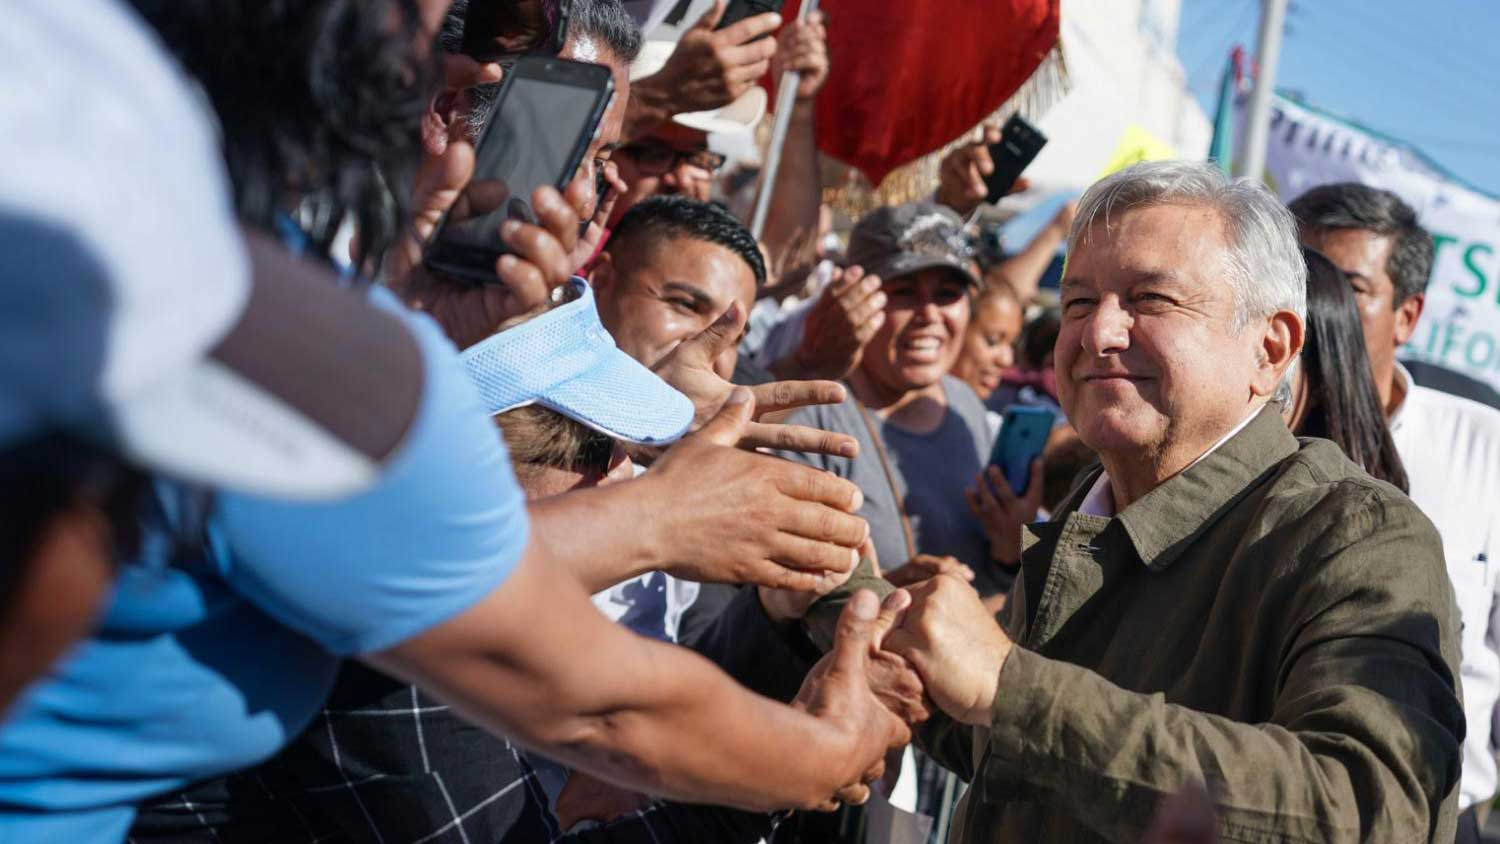 Mexican President Andrés Manuel López Obrador is greeted by supporters in Tijuana, Mexico, before a rally, in this photo dated June 8, 2019.